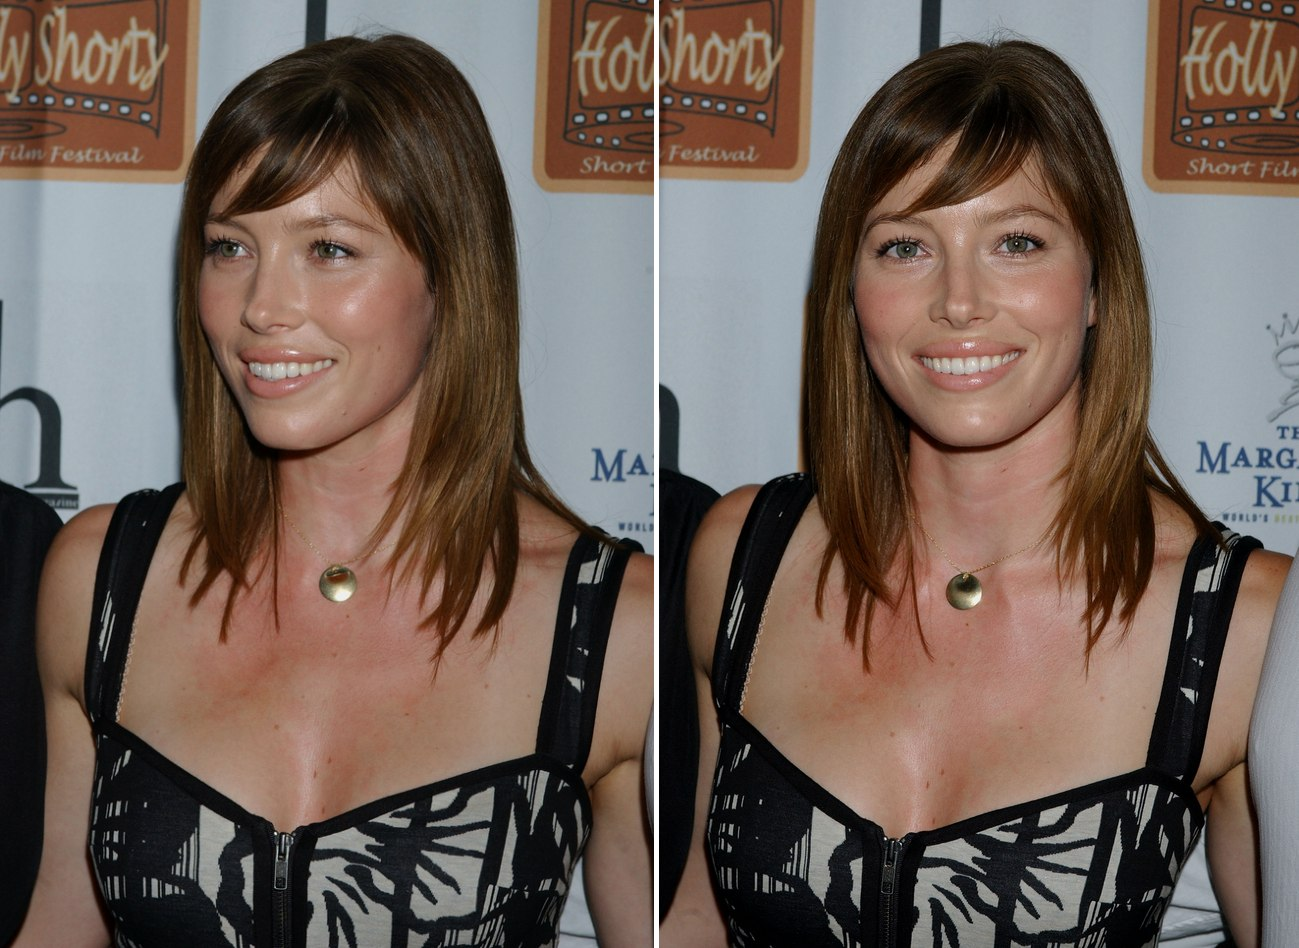 Rebecca Hall Sporting A Shoulder Bob And Jessica Biel With Hair